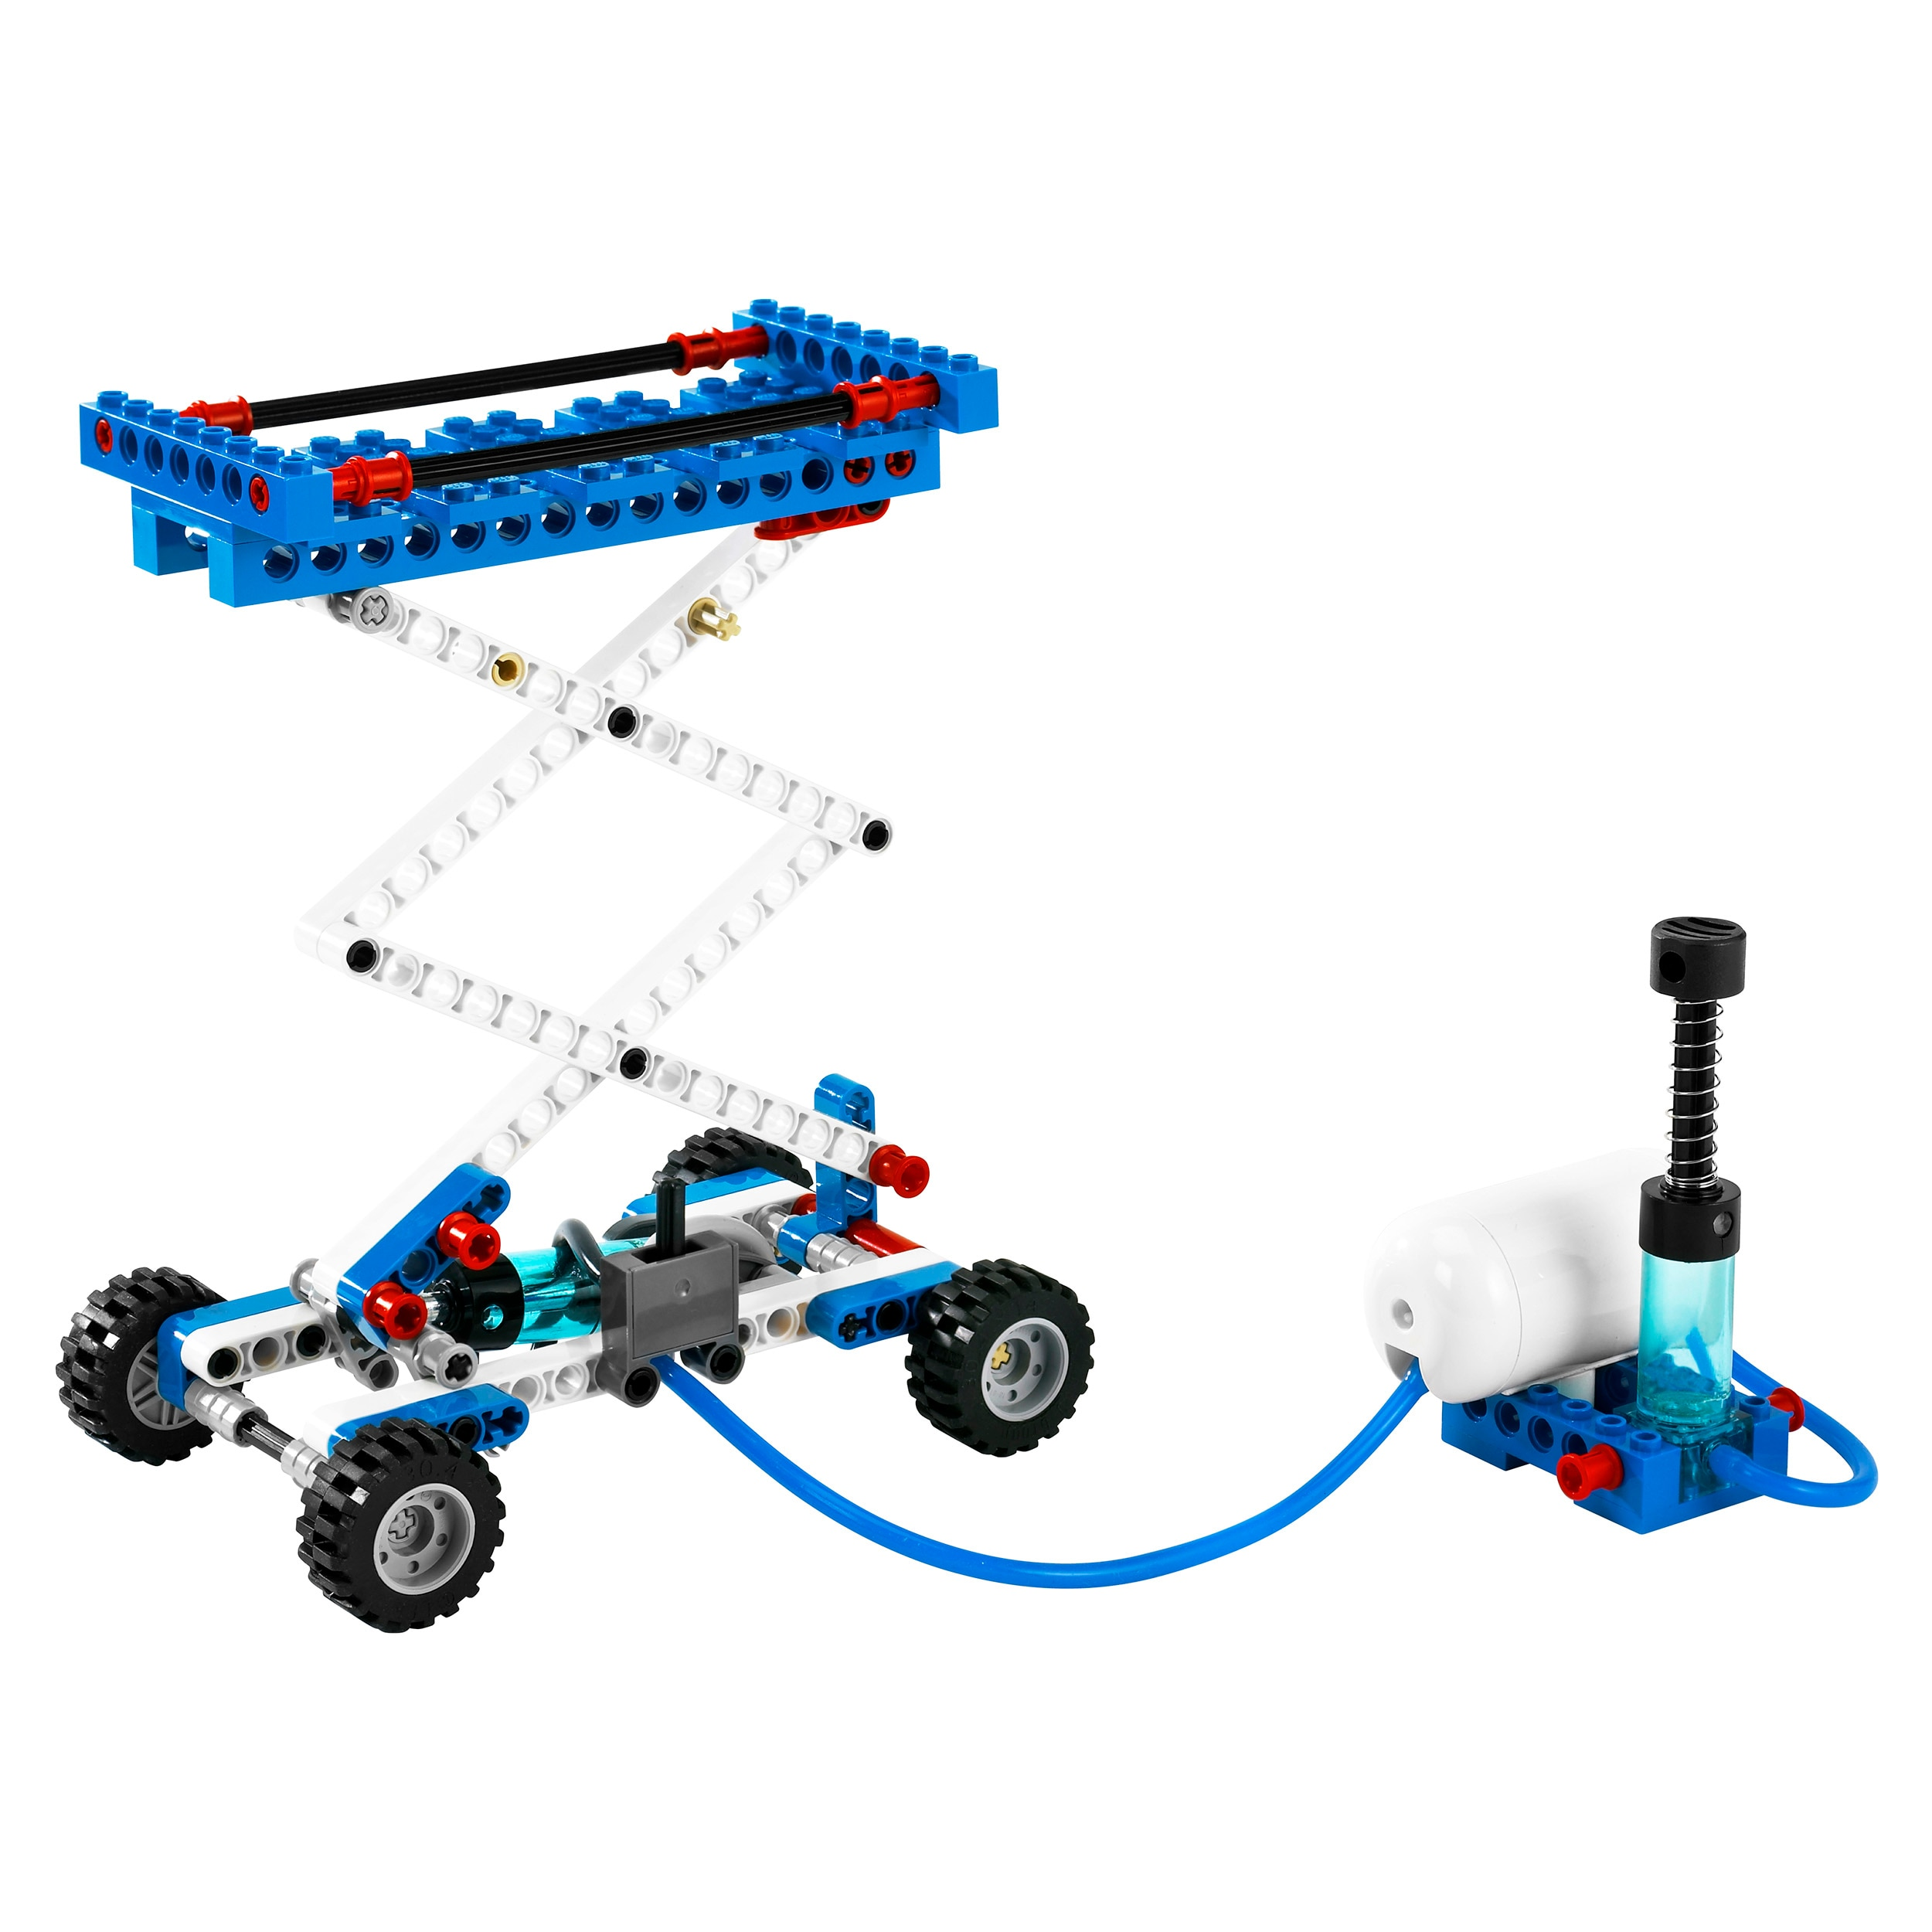 Pneumatic | Machines and Mechanisms Training | LEGO Education Academy